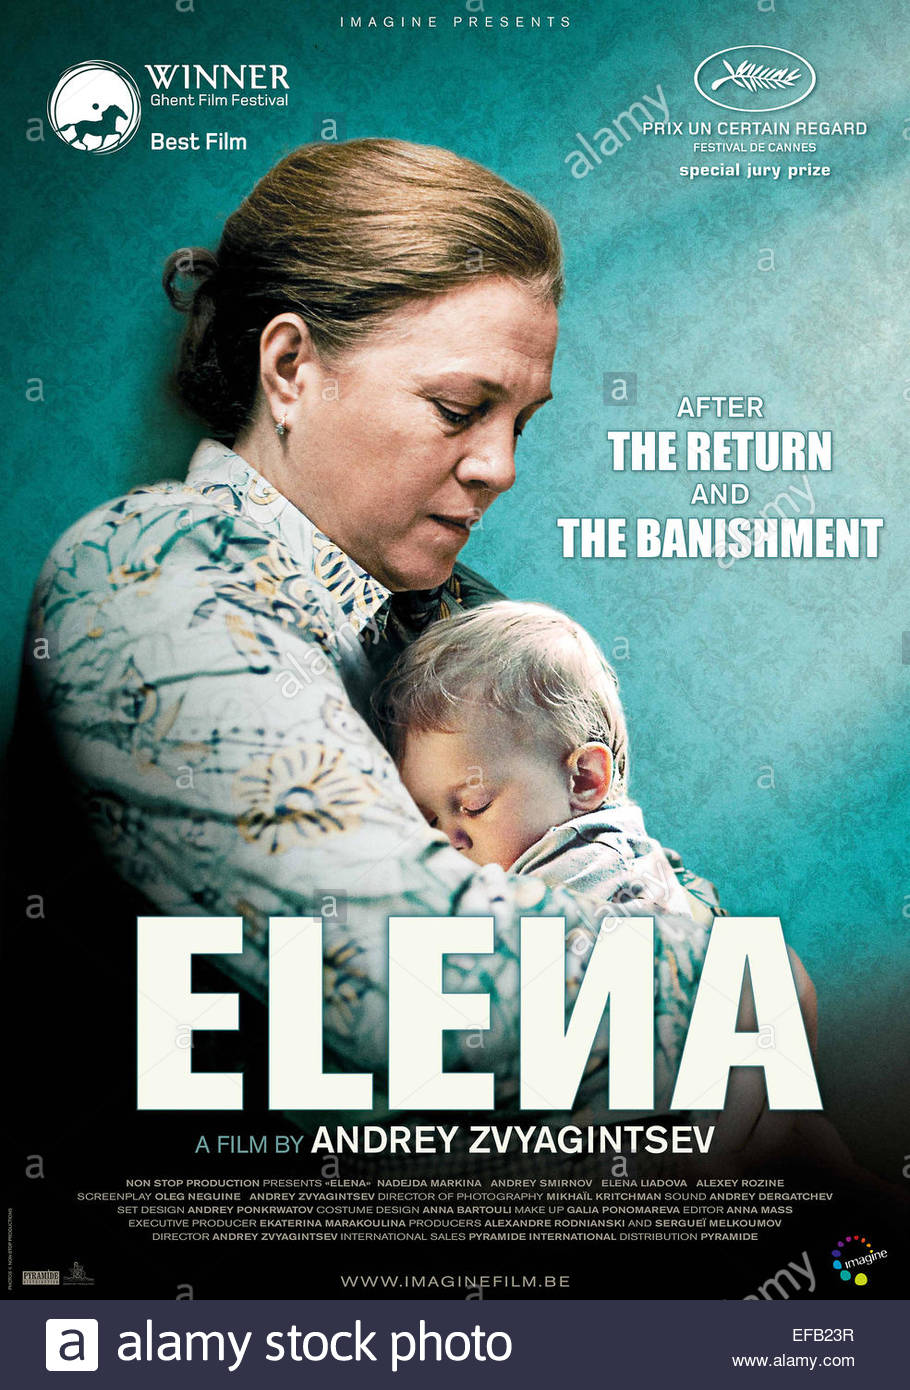 movie-poster-elena-2011-EFB23R.jpg